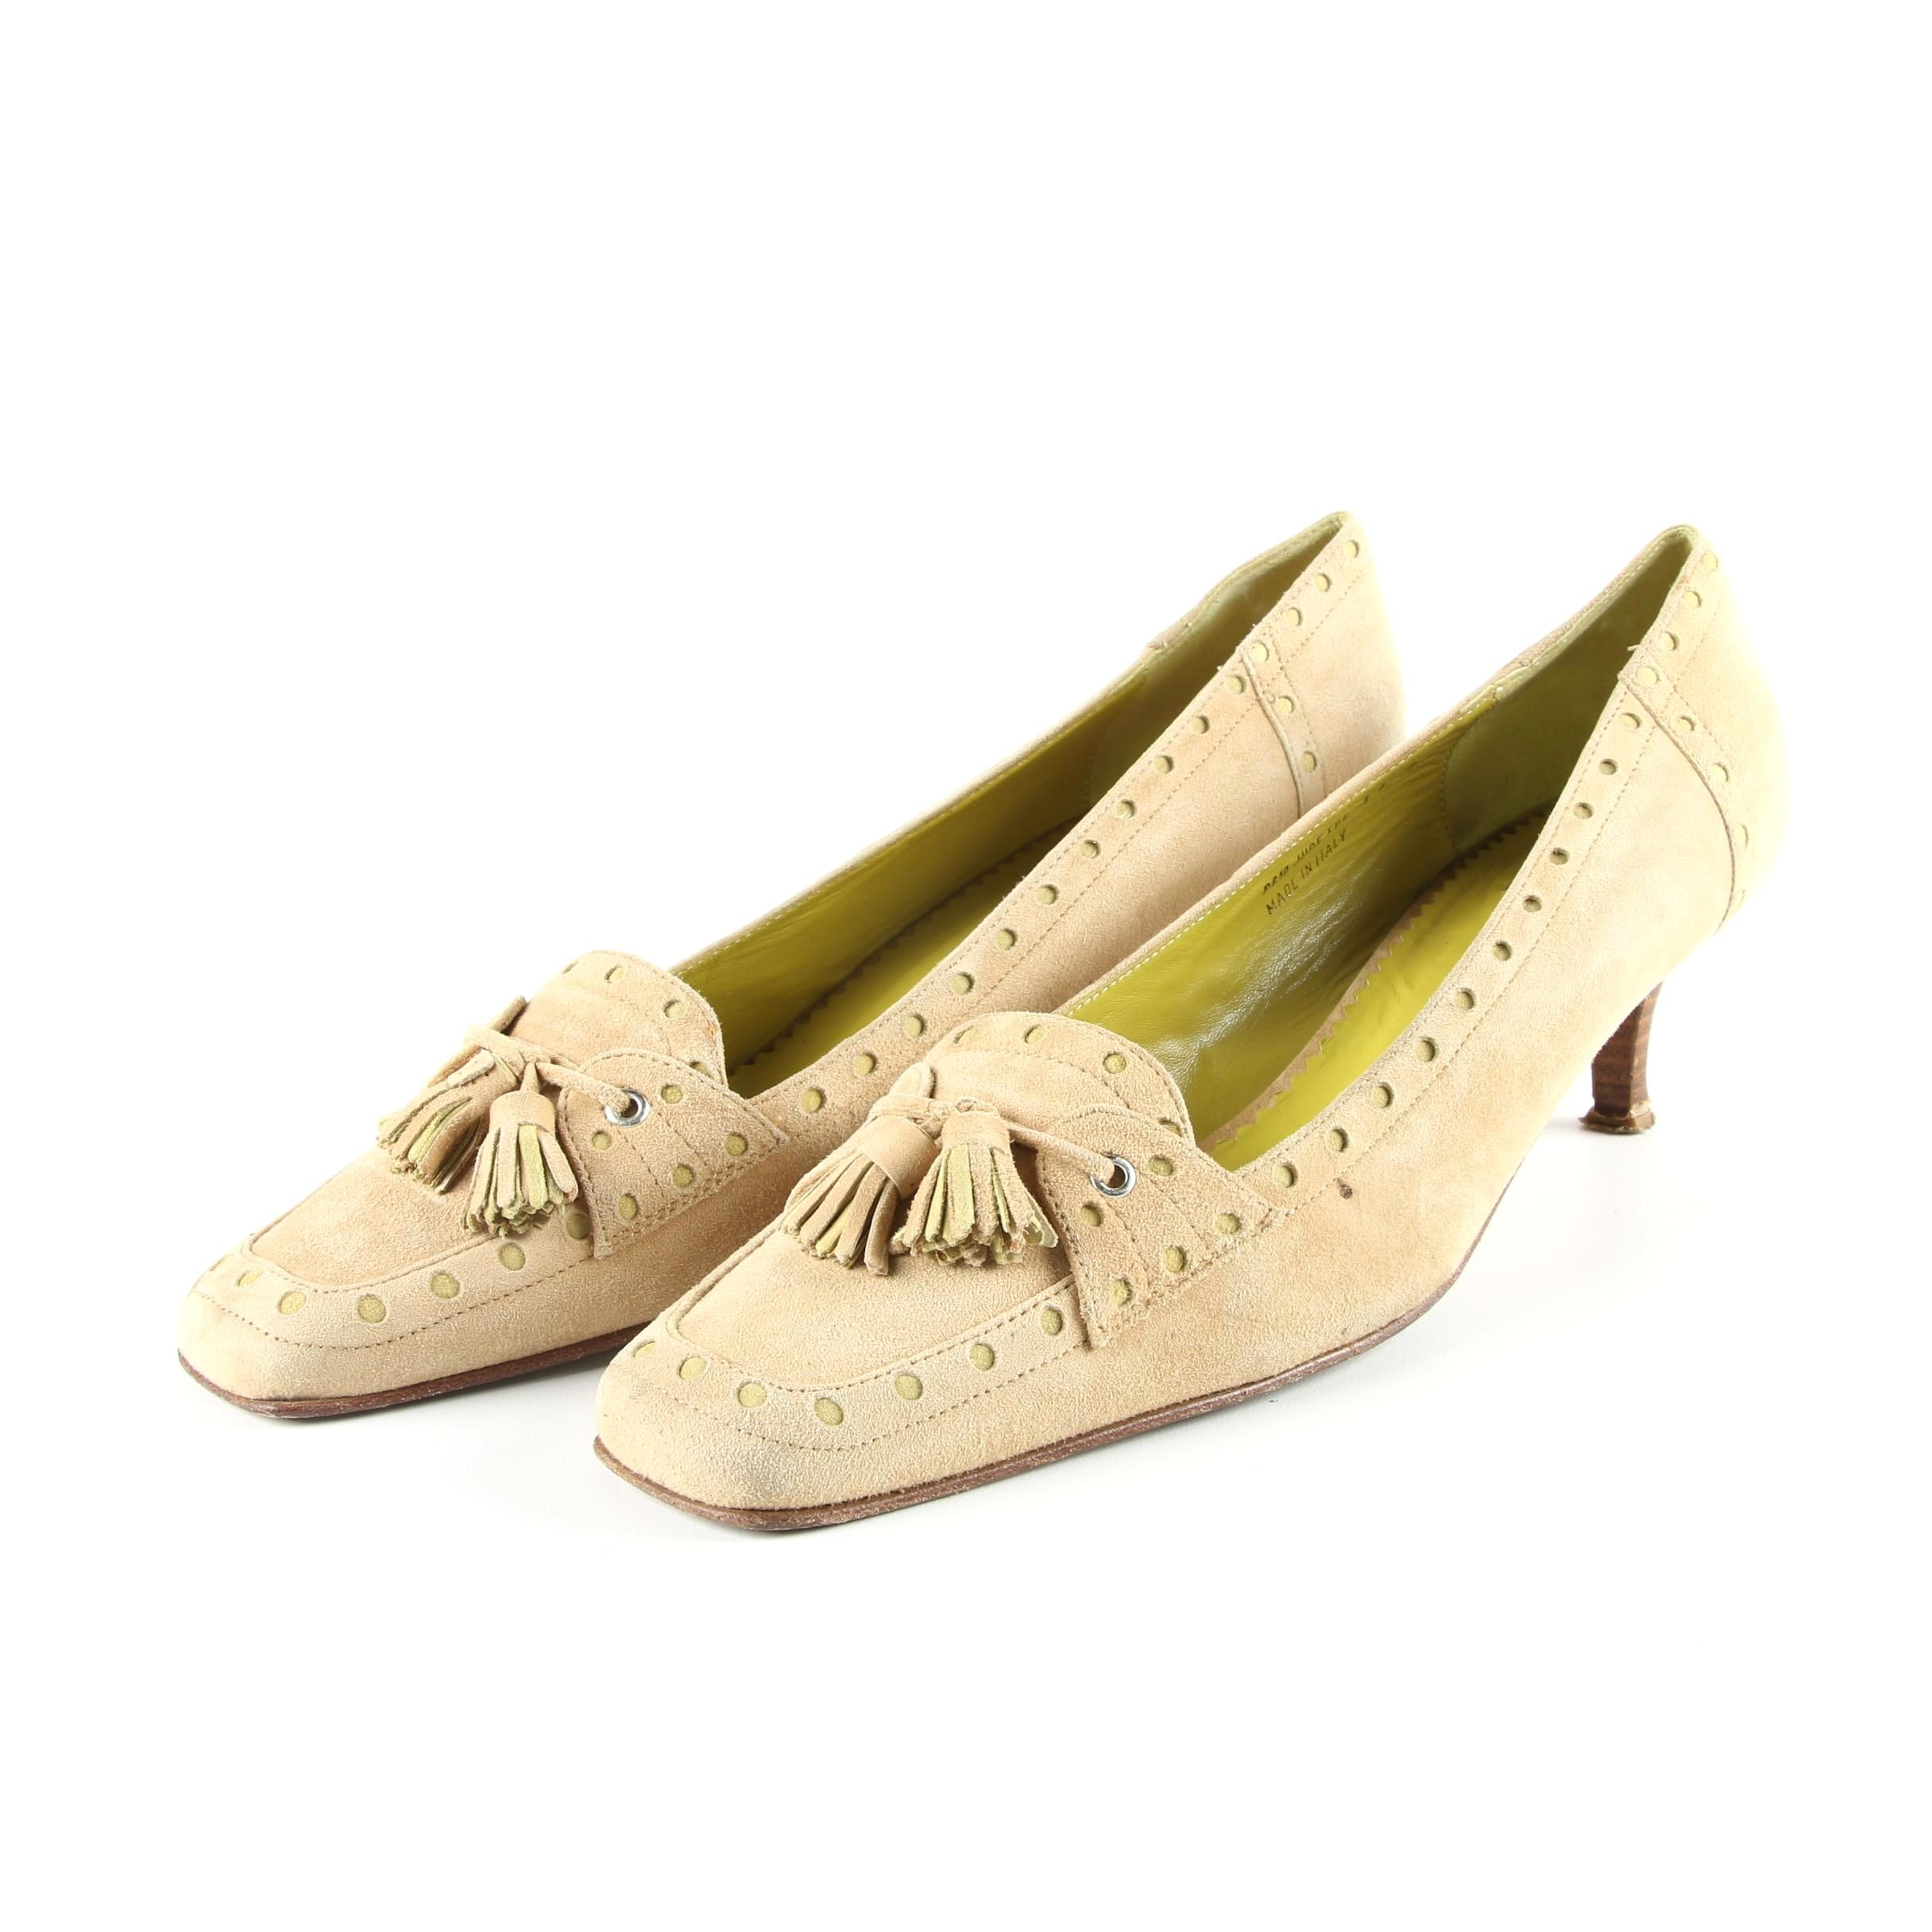 Women's Coach Jude Heeled Loafers with Tassels